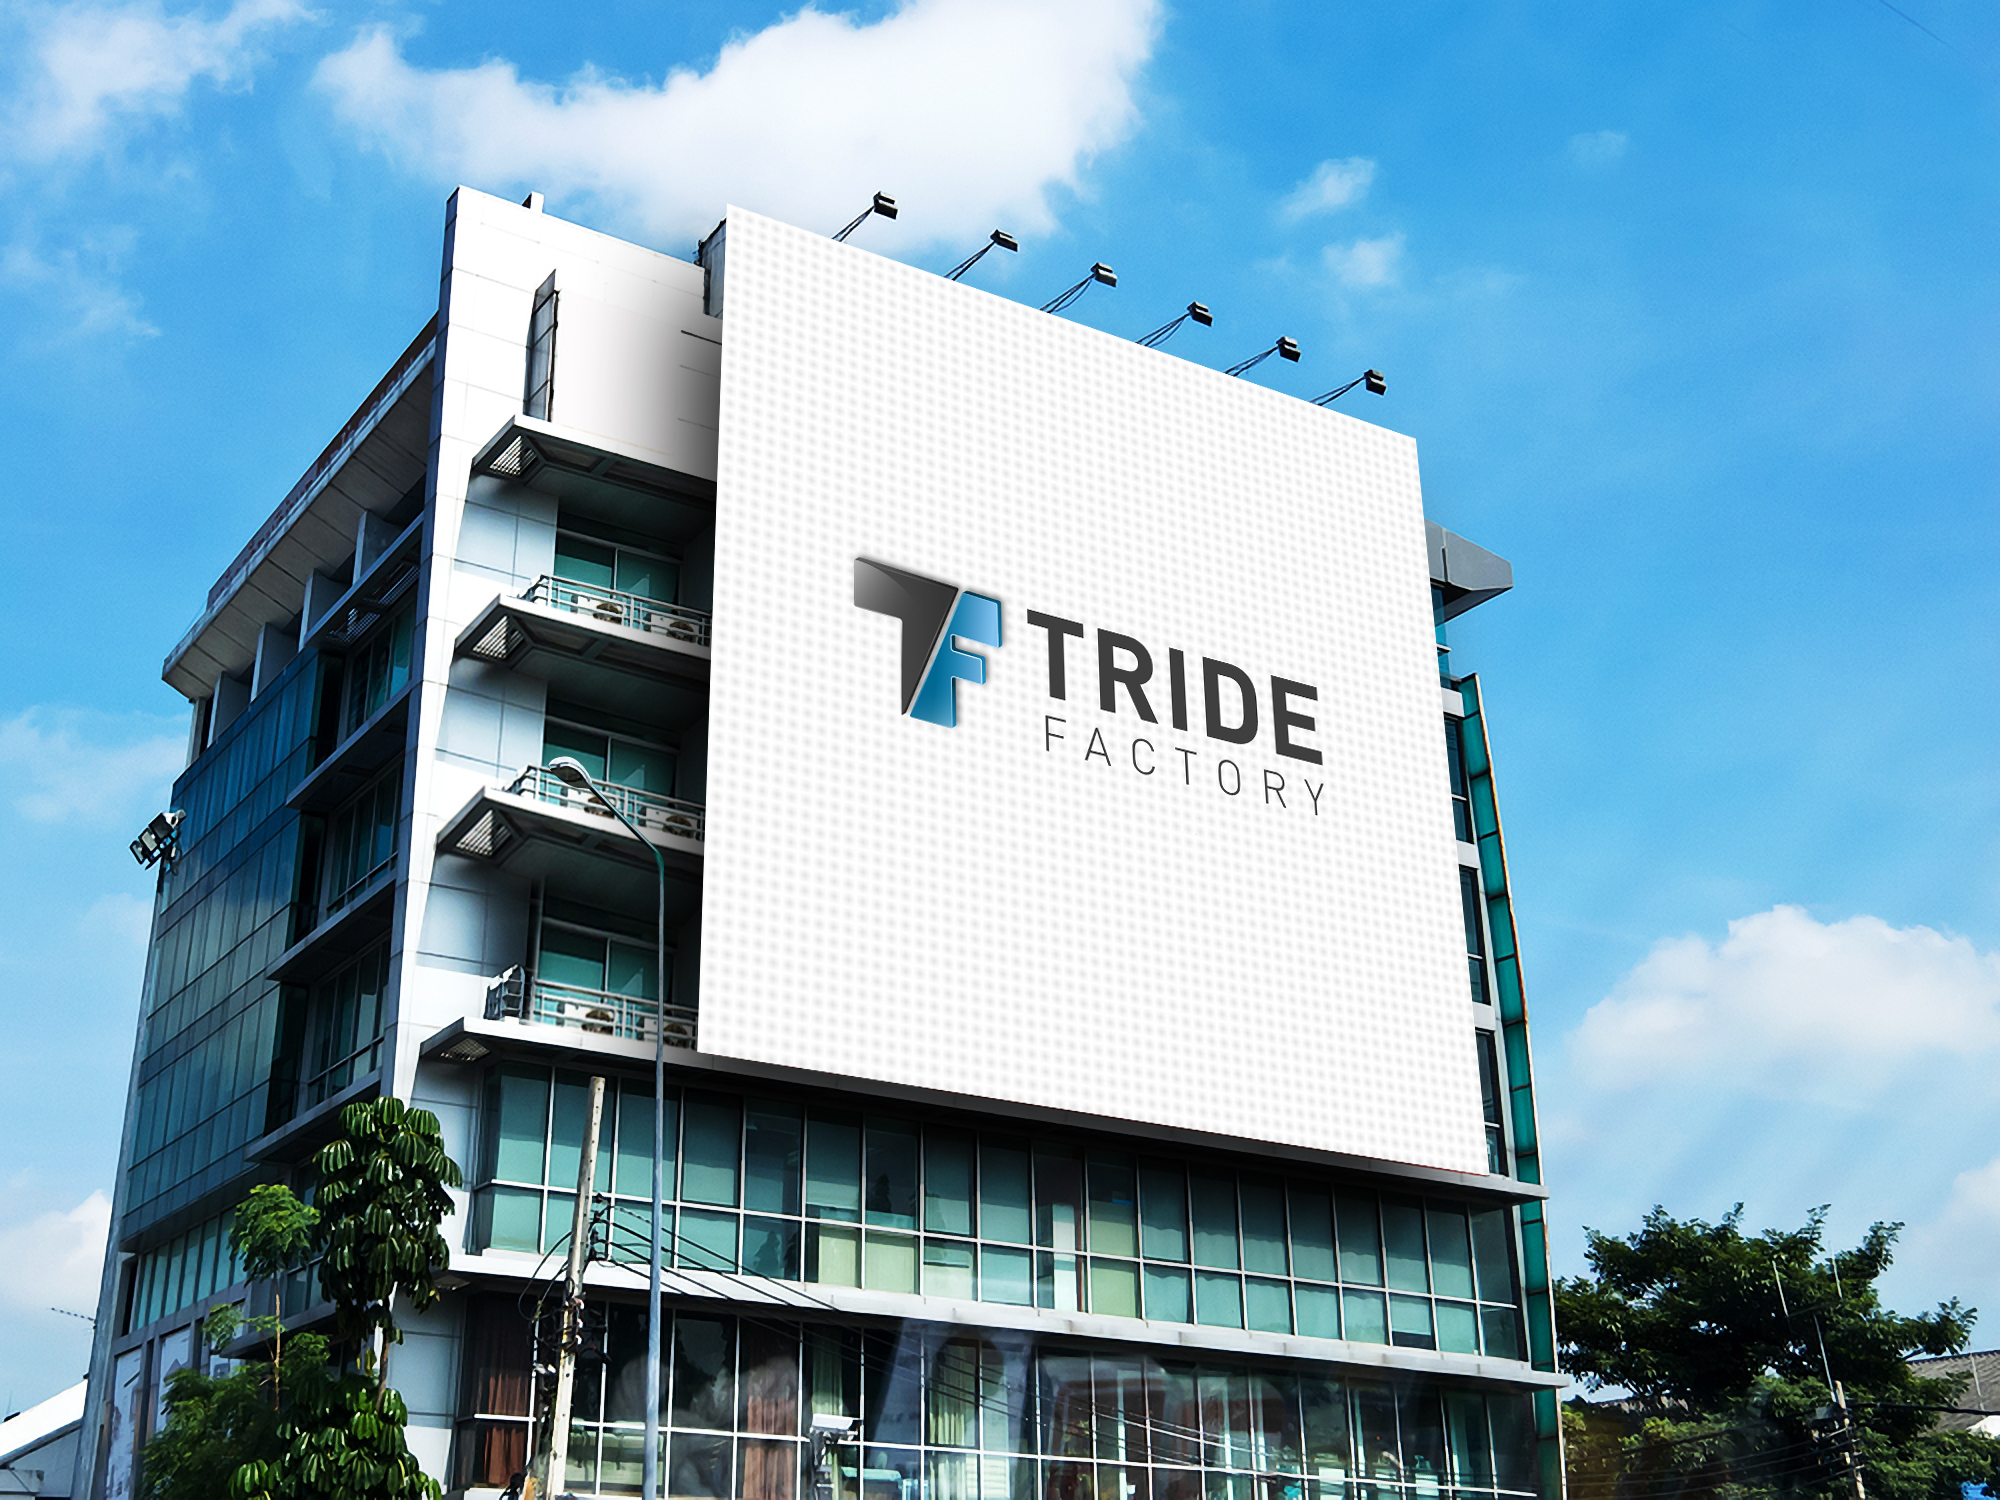 TRIDE factory